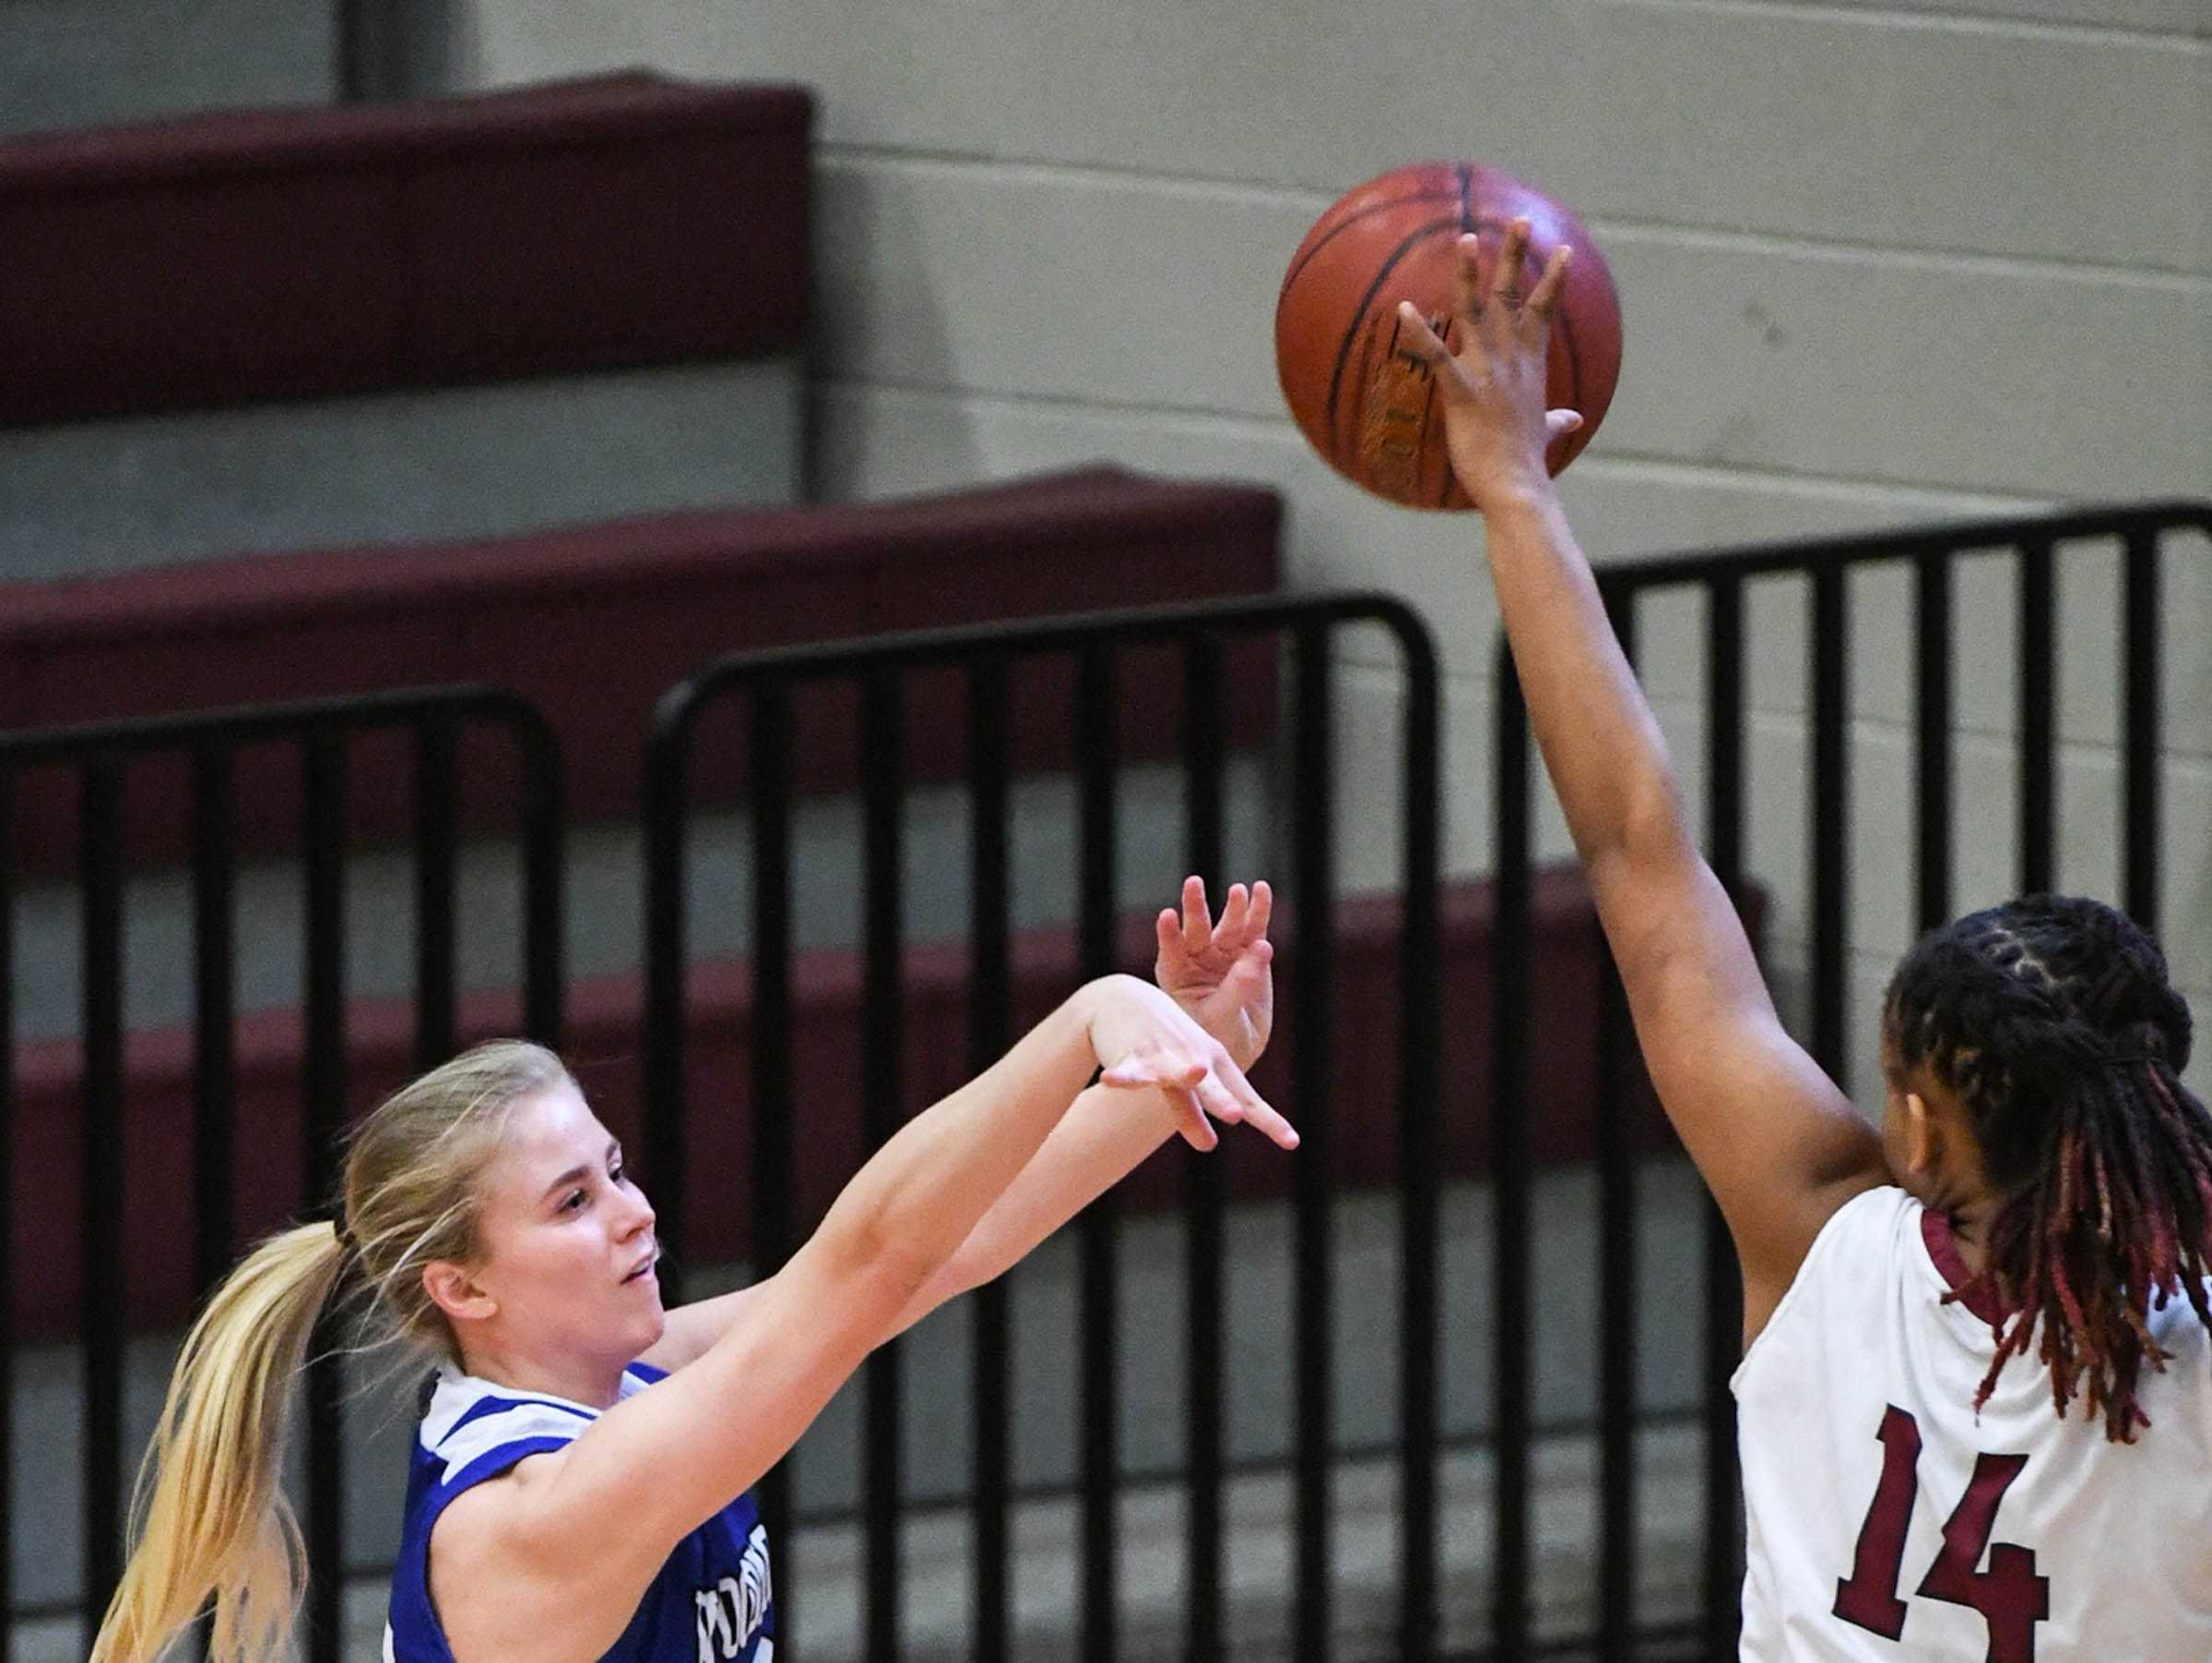 Woodmont senior Xan Rowland(20) shoots a three-pointer near Westside junior Tatyana Lewis(14) during the first quarter at Westside High School in Anderson on Tuesday.